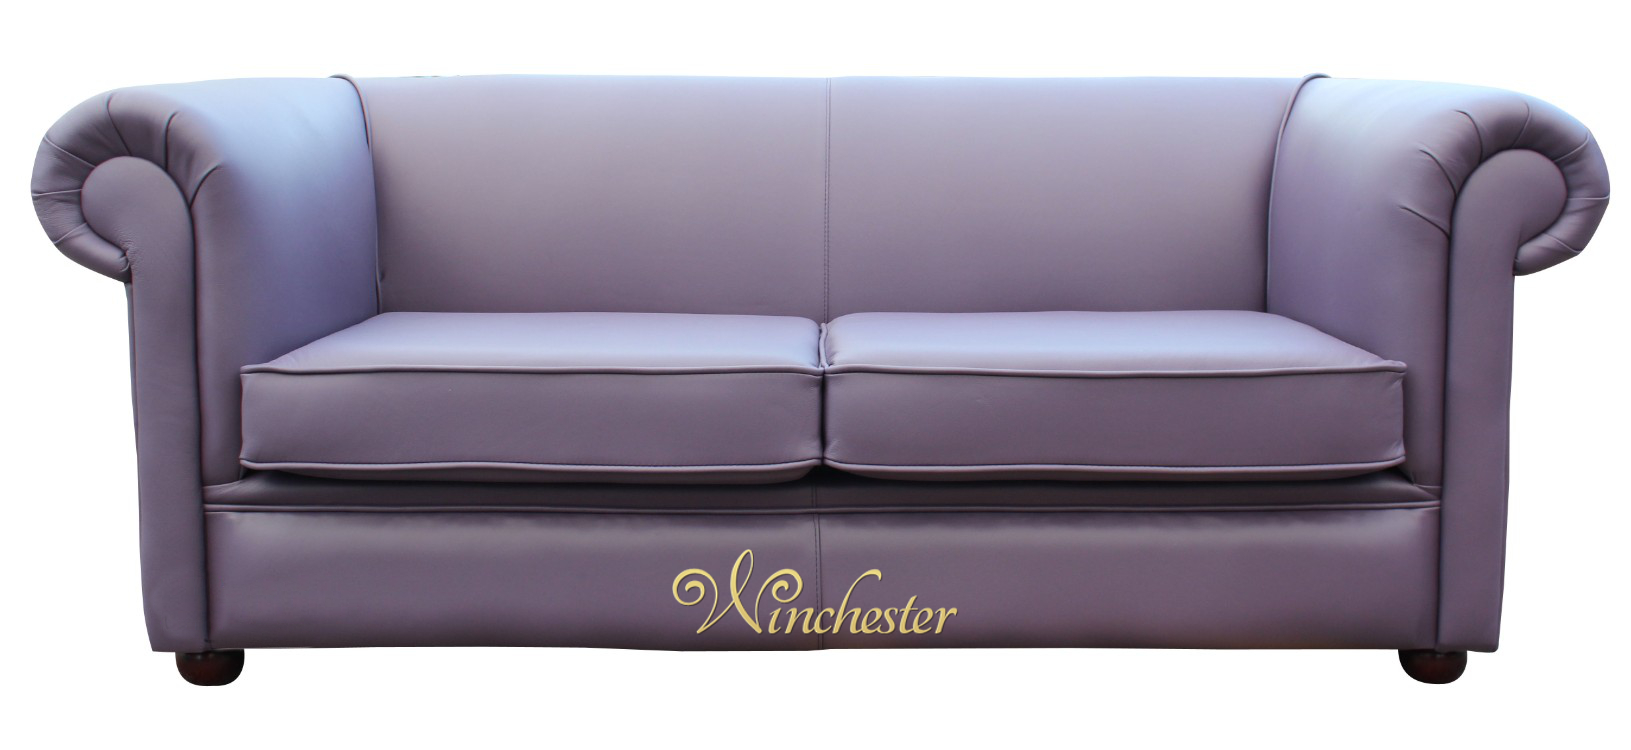 Chesterfield 1930 39 S 2 5 Seater Settee Amethyst Purple Leather Sofa